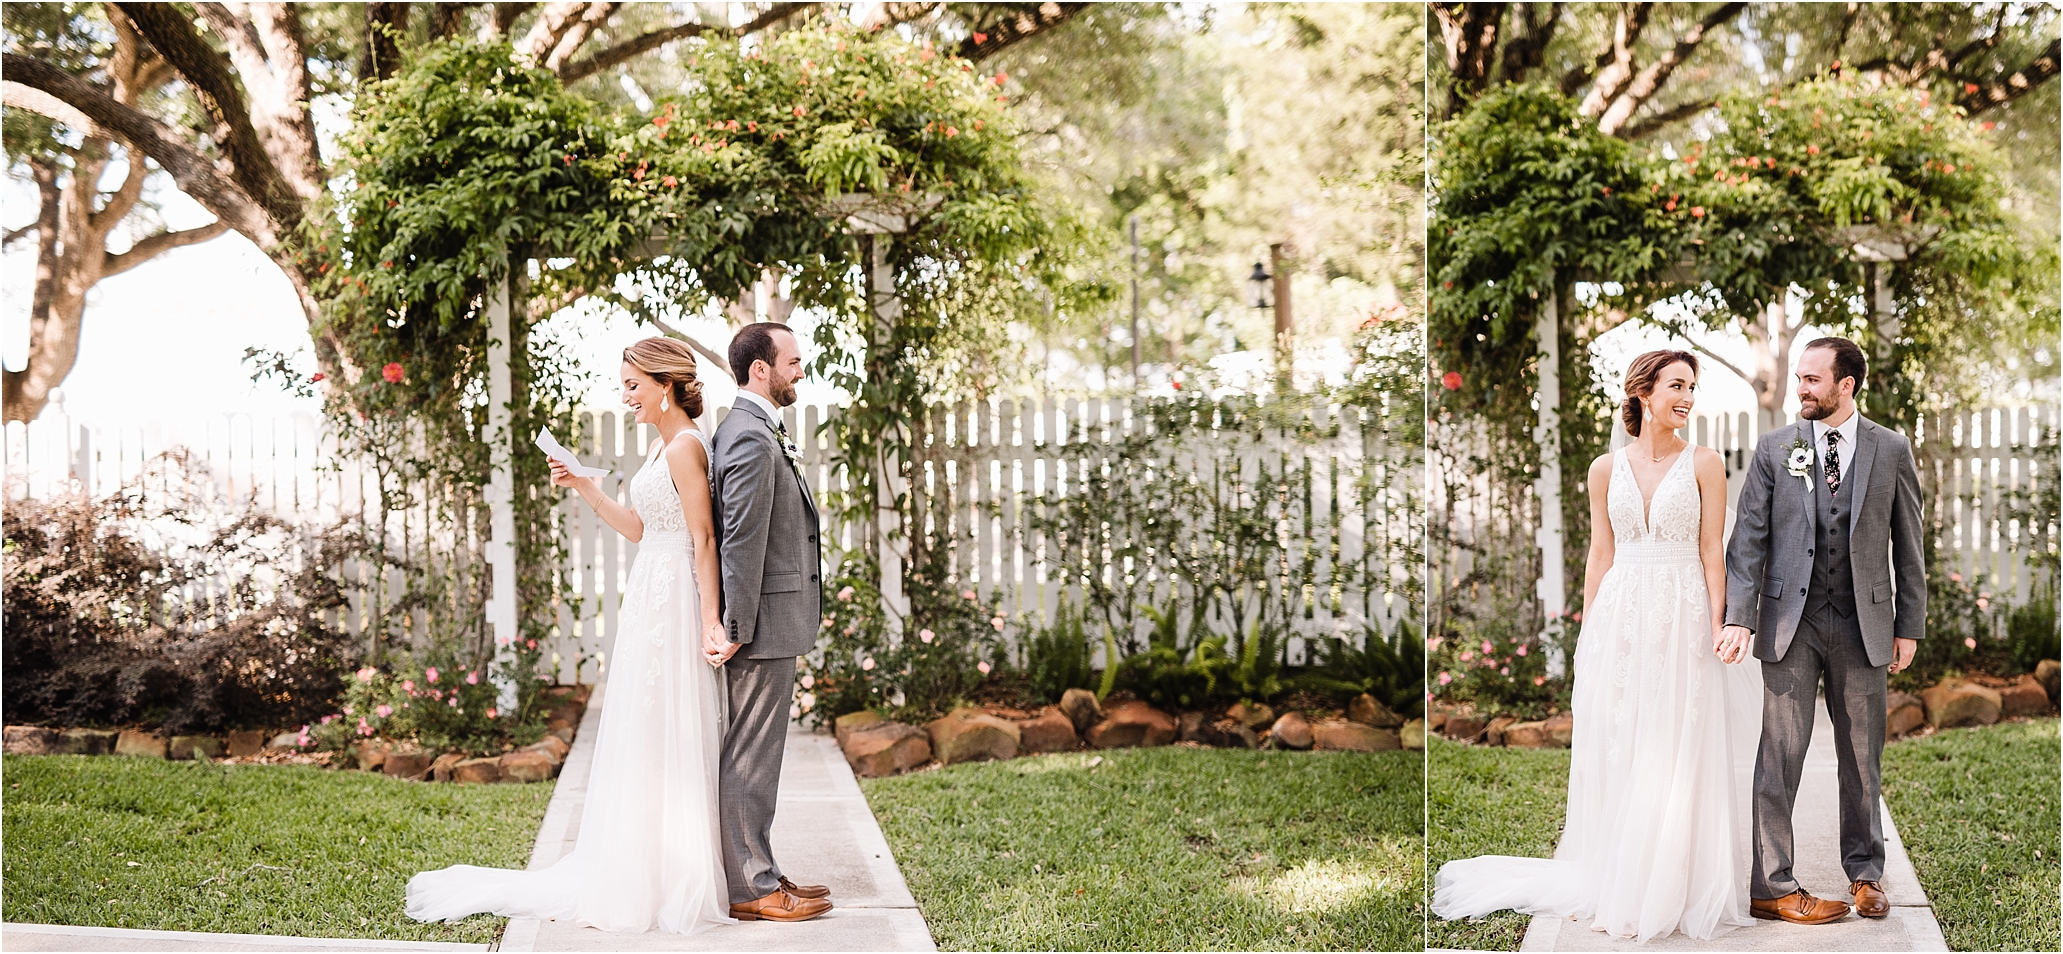 PattisonHouse_TexasWeddingPhotographer_CarlyCrockett&MattBrownWedding_0061.jpg